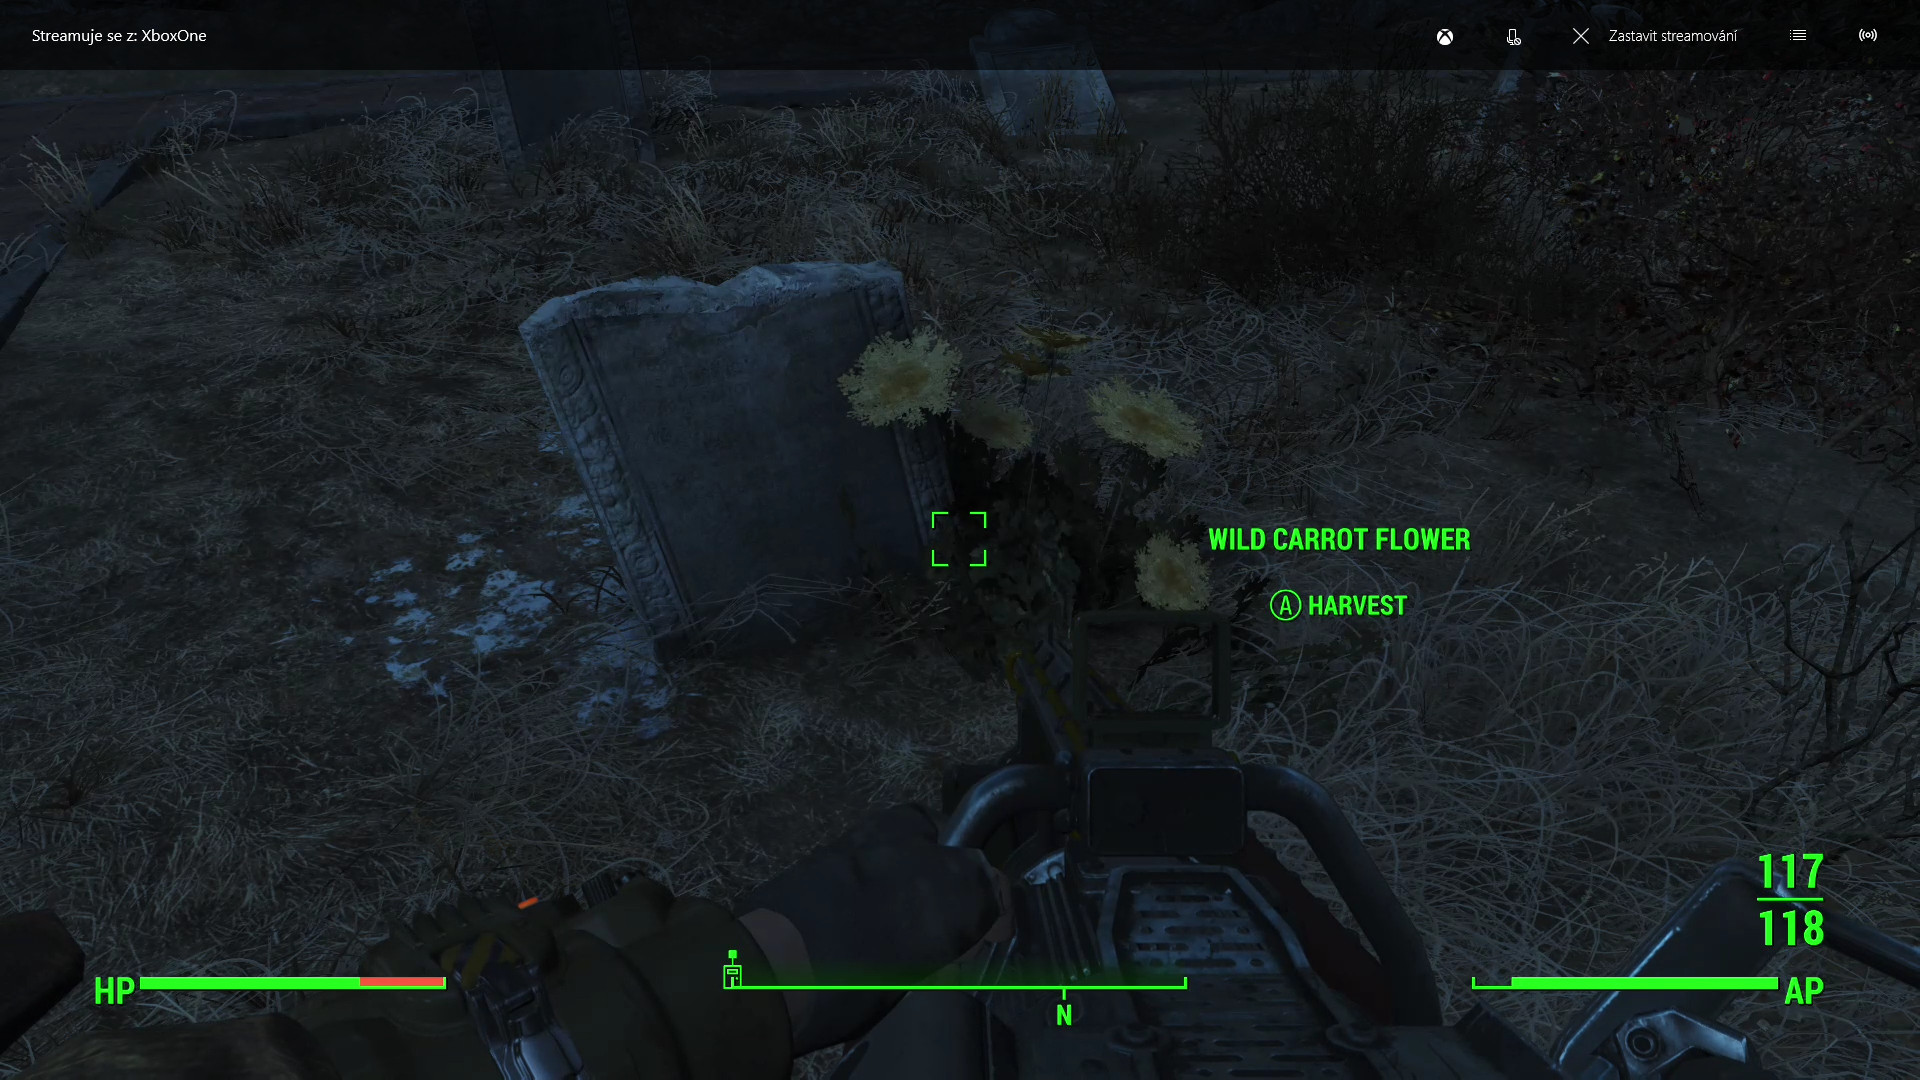 Fallout 4 Carrot Flower  ments on B0ngAAA s guide for Beverageer in Fallout 4